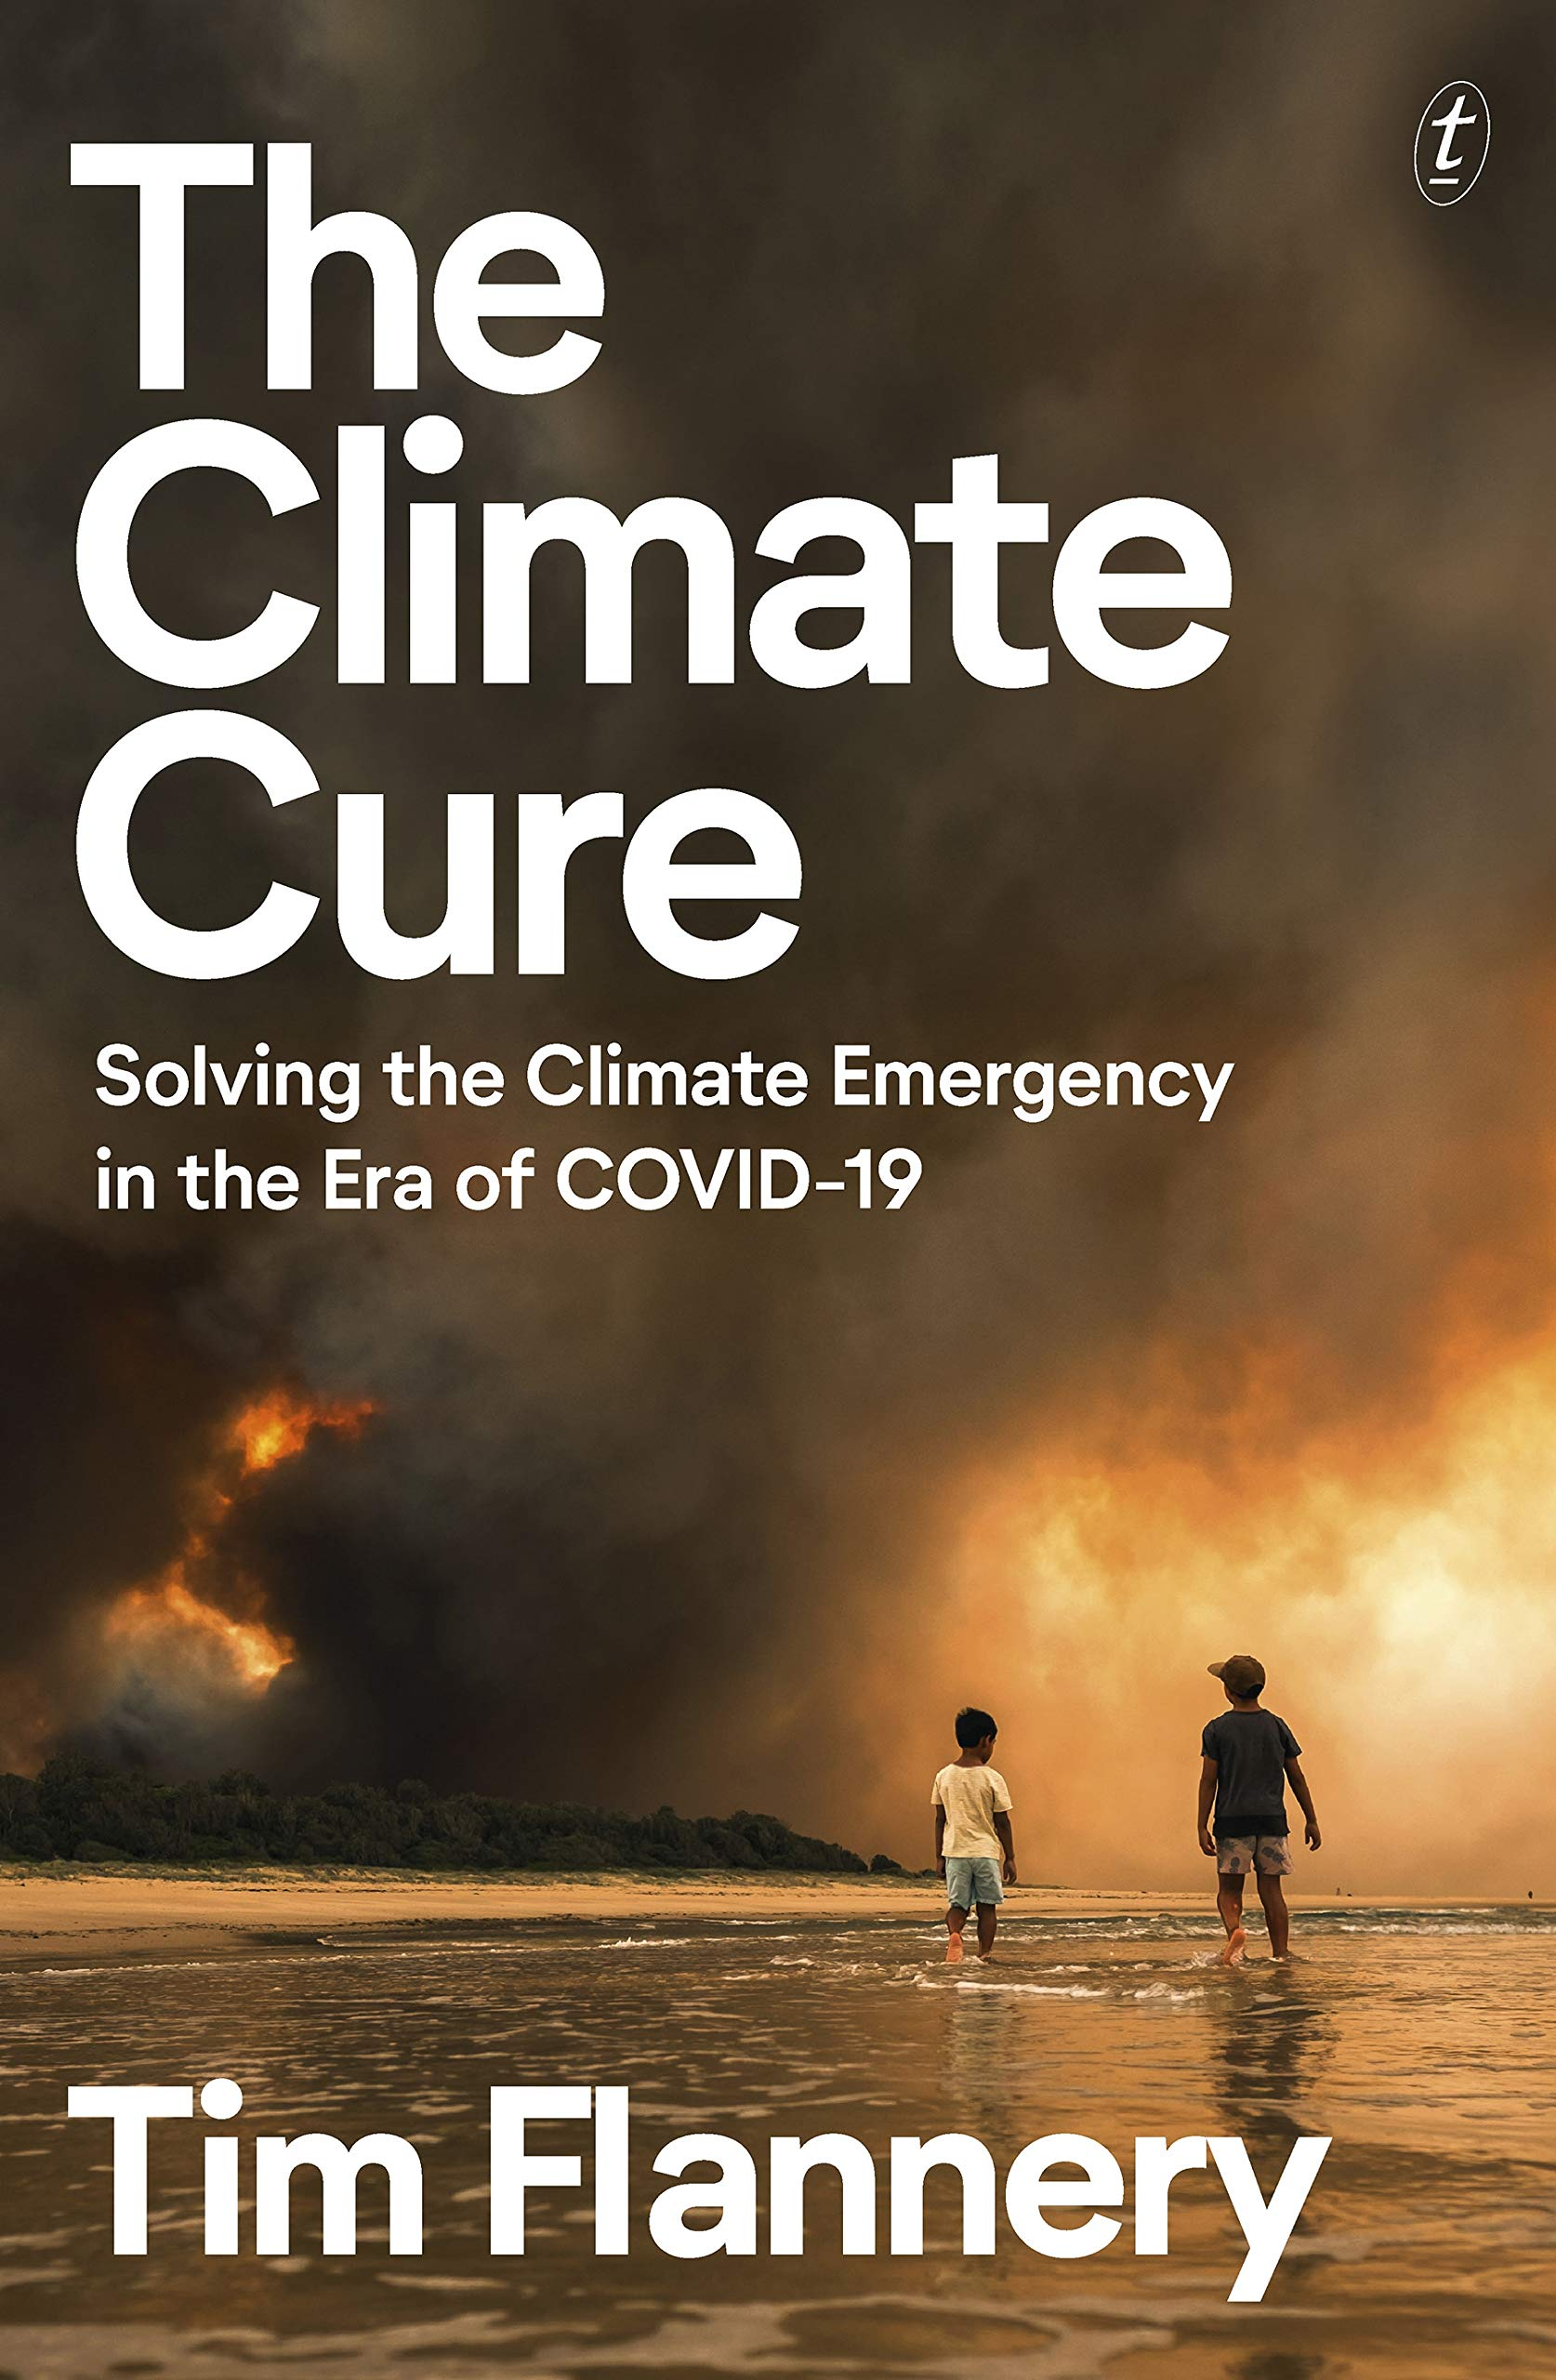 The Climate Cure: Solving the Climate Emergency in the Era of COVID-19, by Tim Flannery - Survival (and Other) Books About the COVID-19 Coronavirus - Survival Books - Survival, Sustainable Living